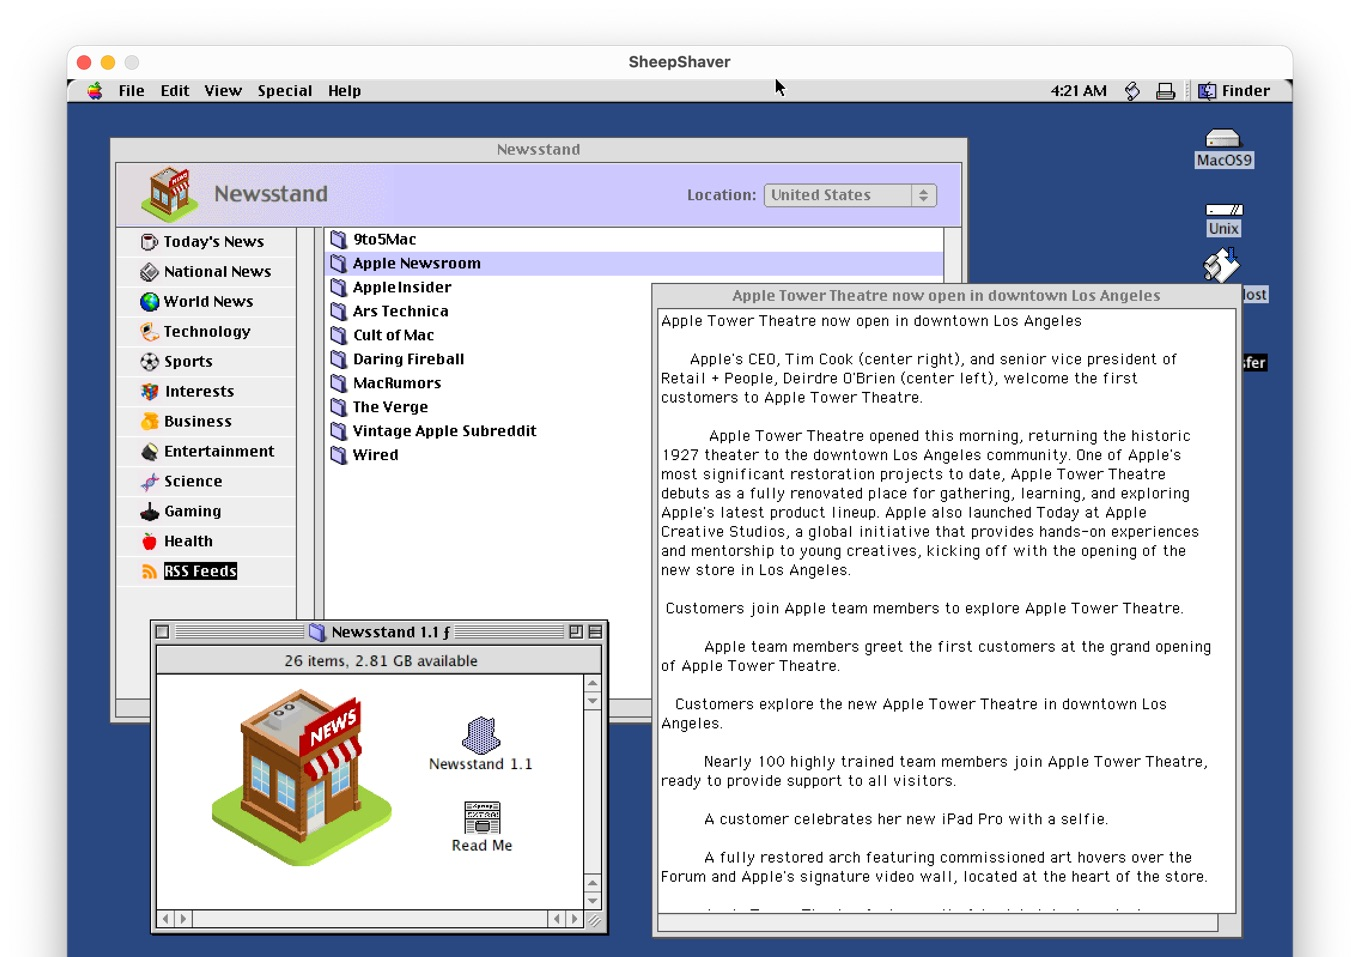 Newsstand for Mac OS 9 on SheepShaver